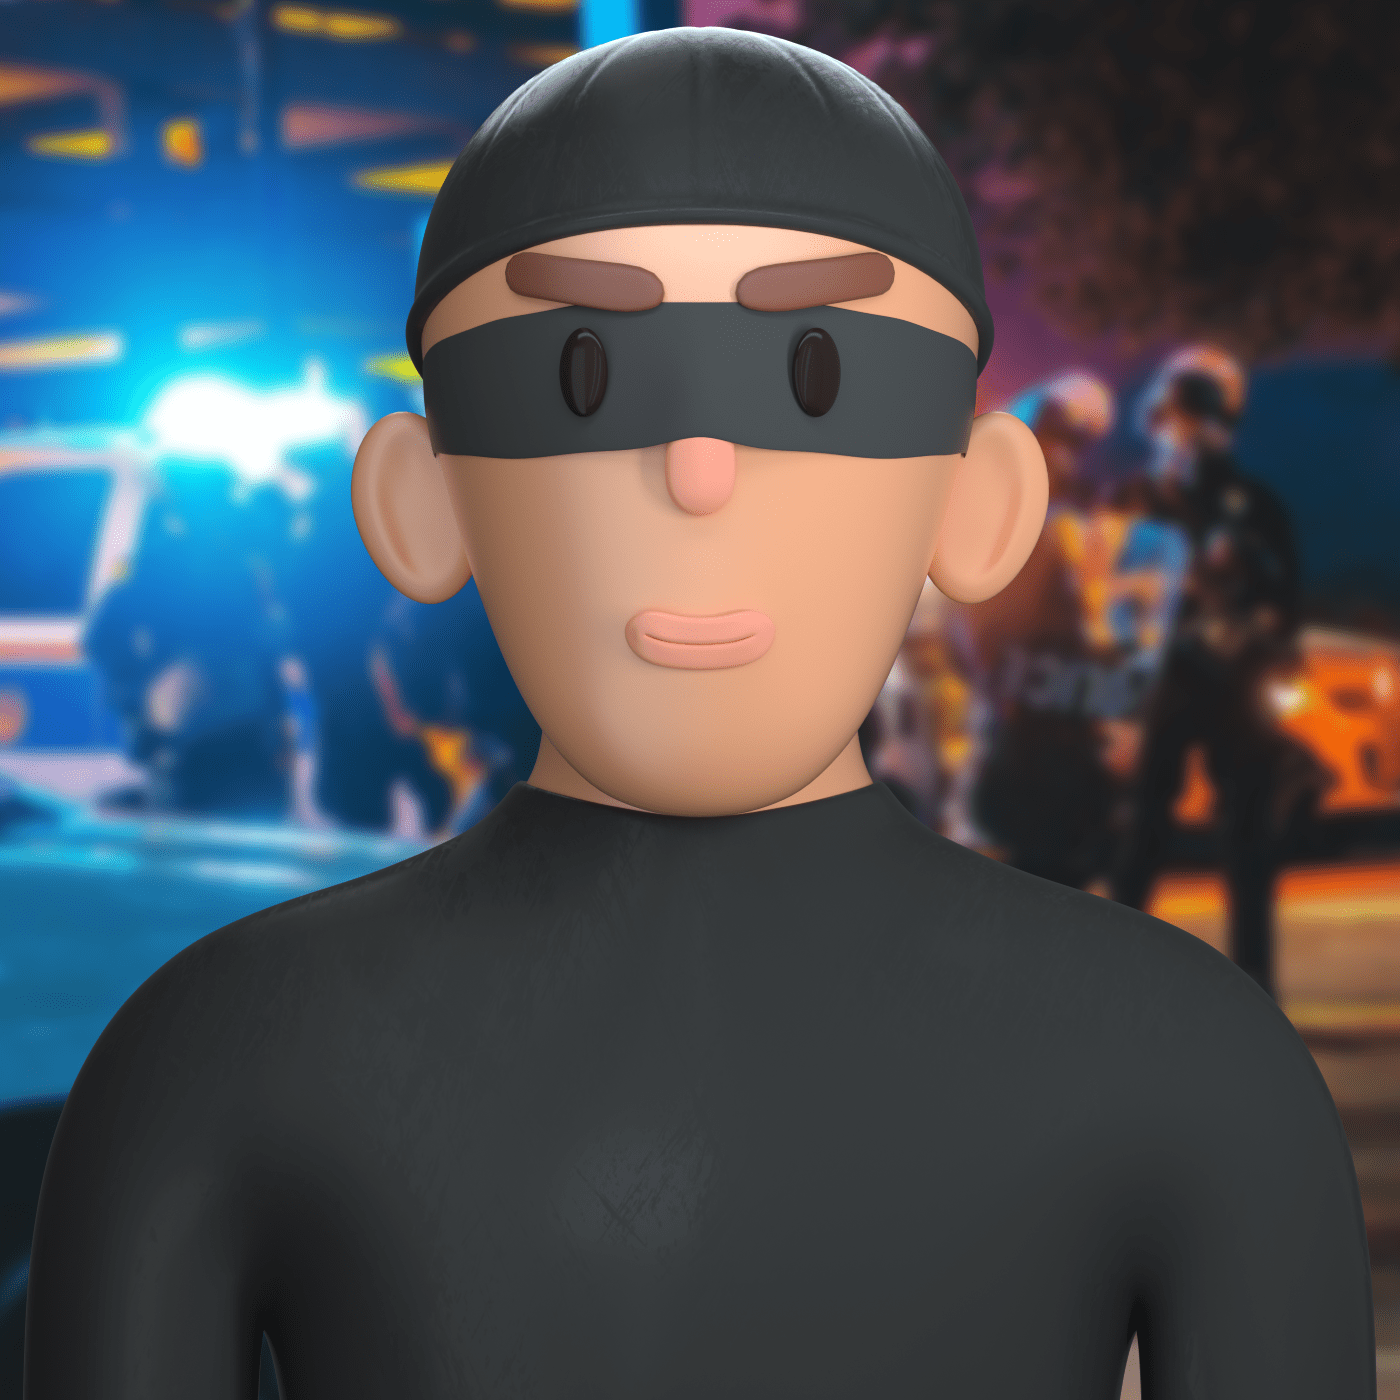 a thief character in 3d design style